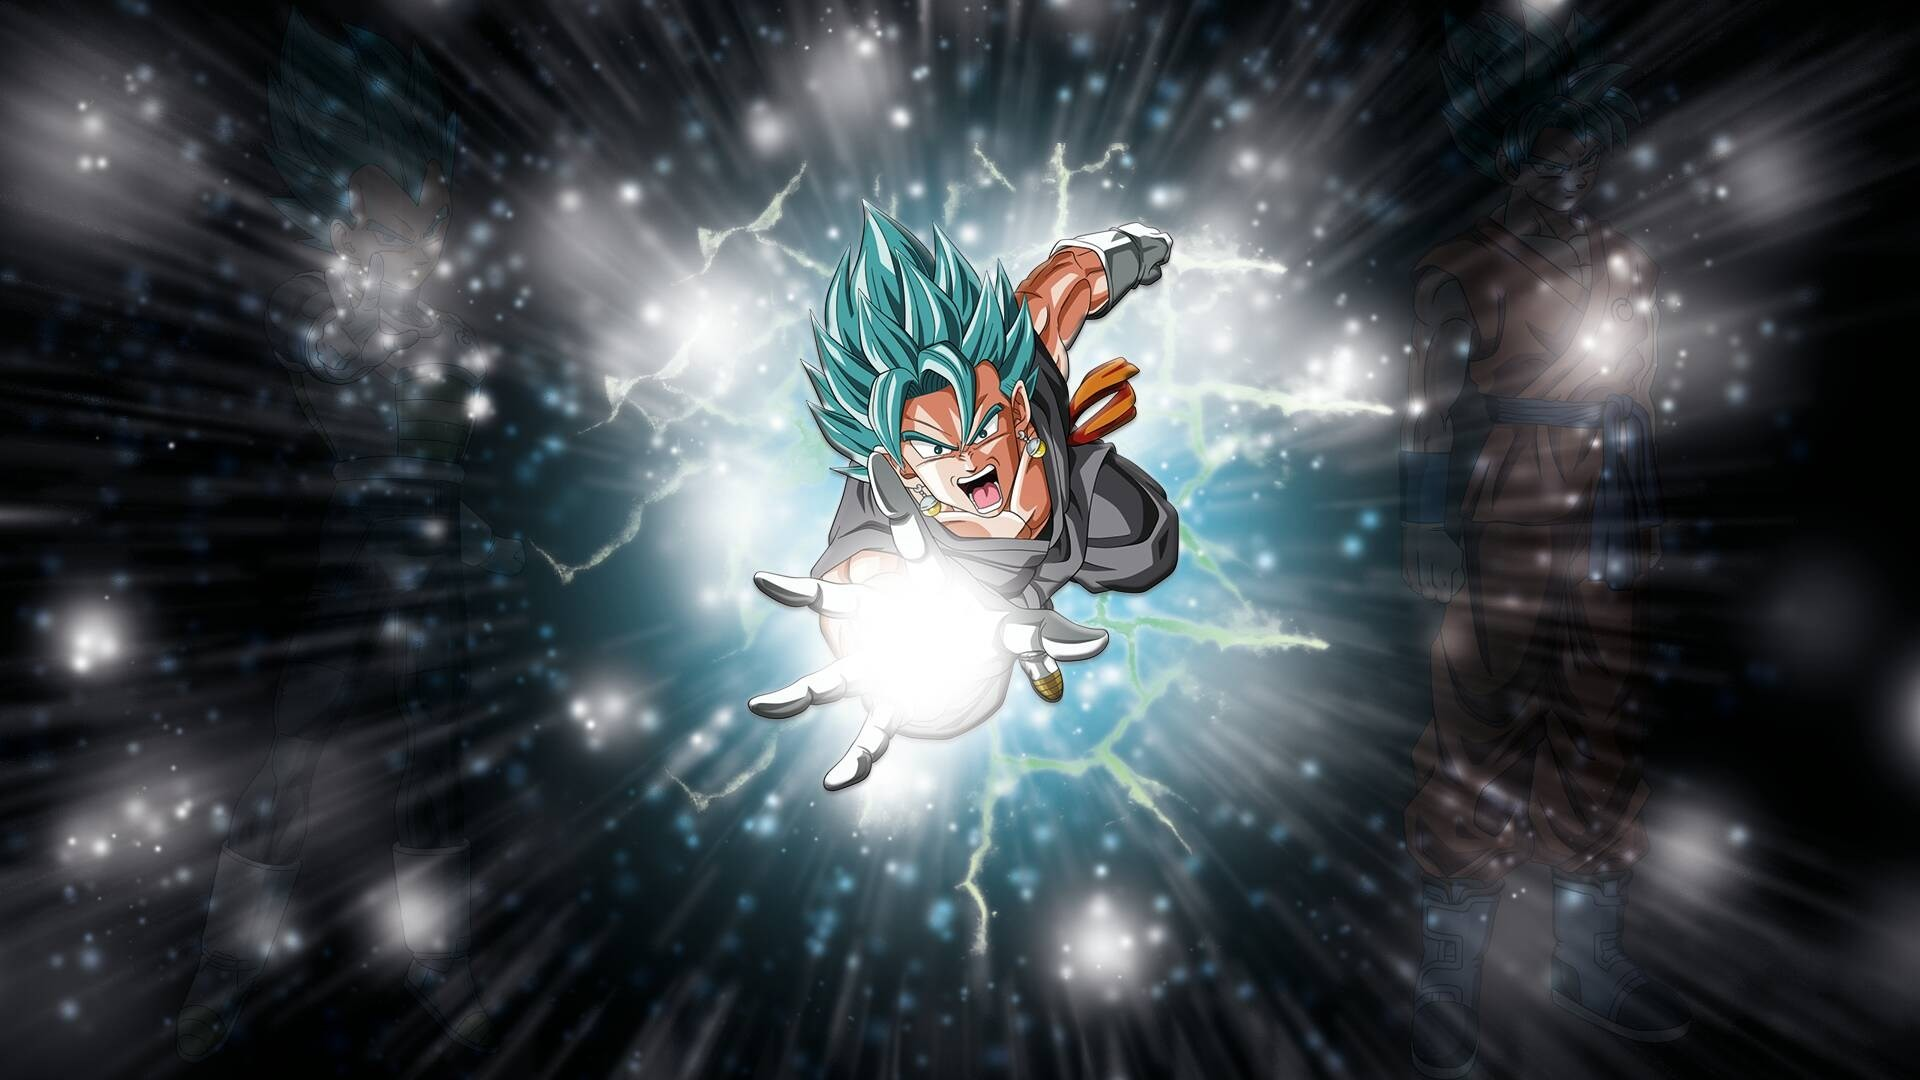 dragon ball super images for backgrounds desktop free – dragon ball super  category